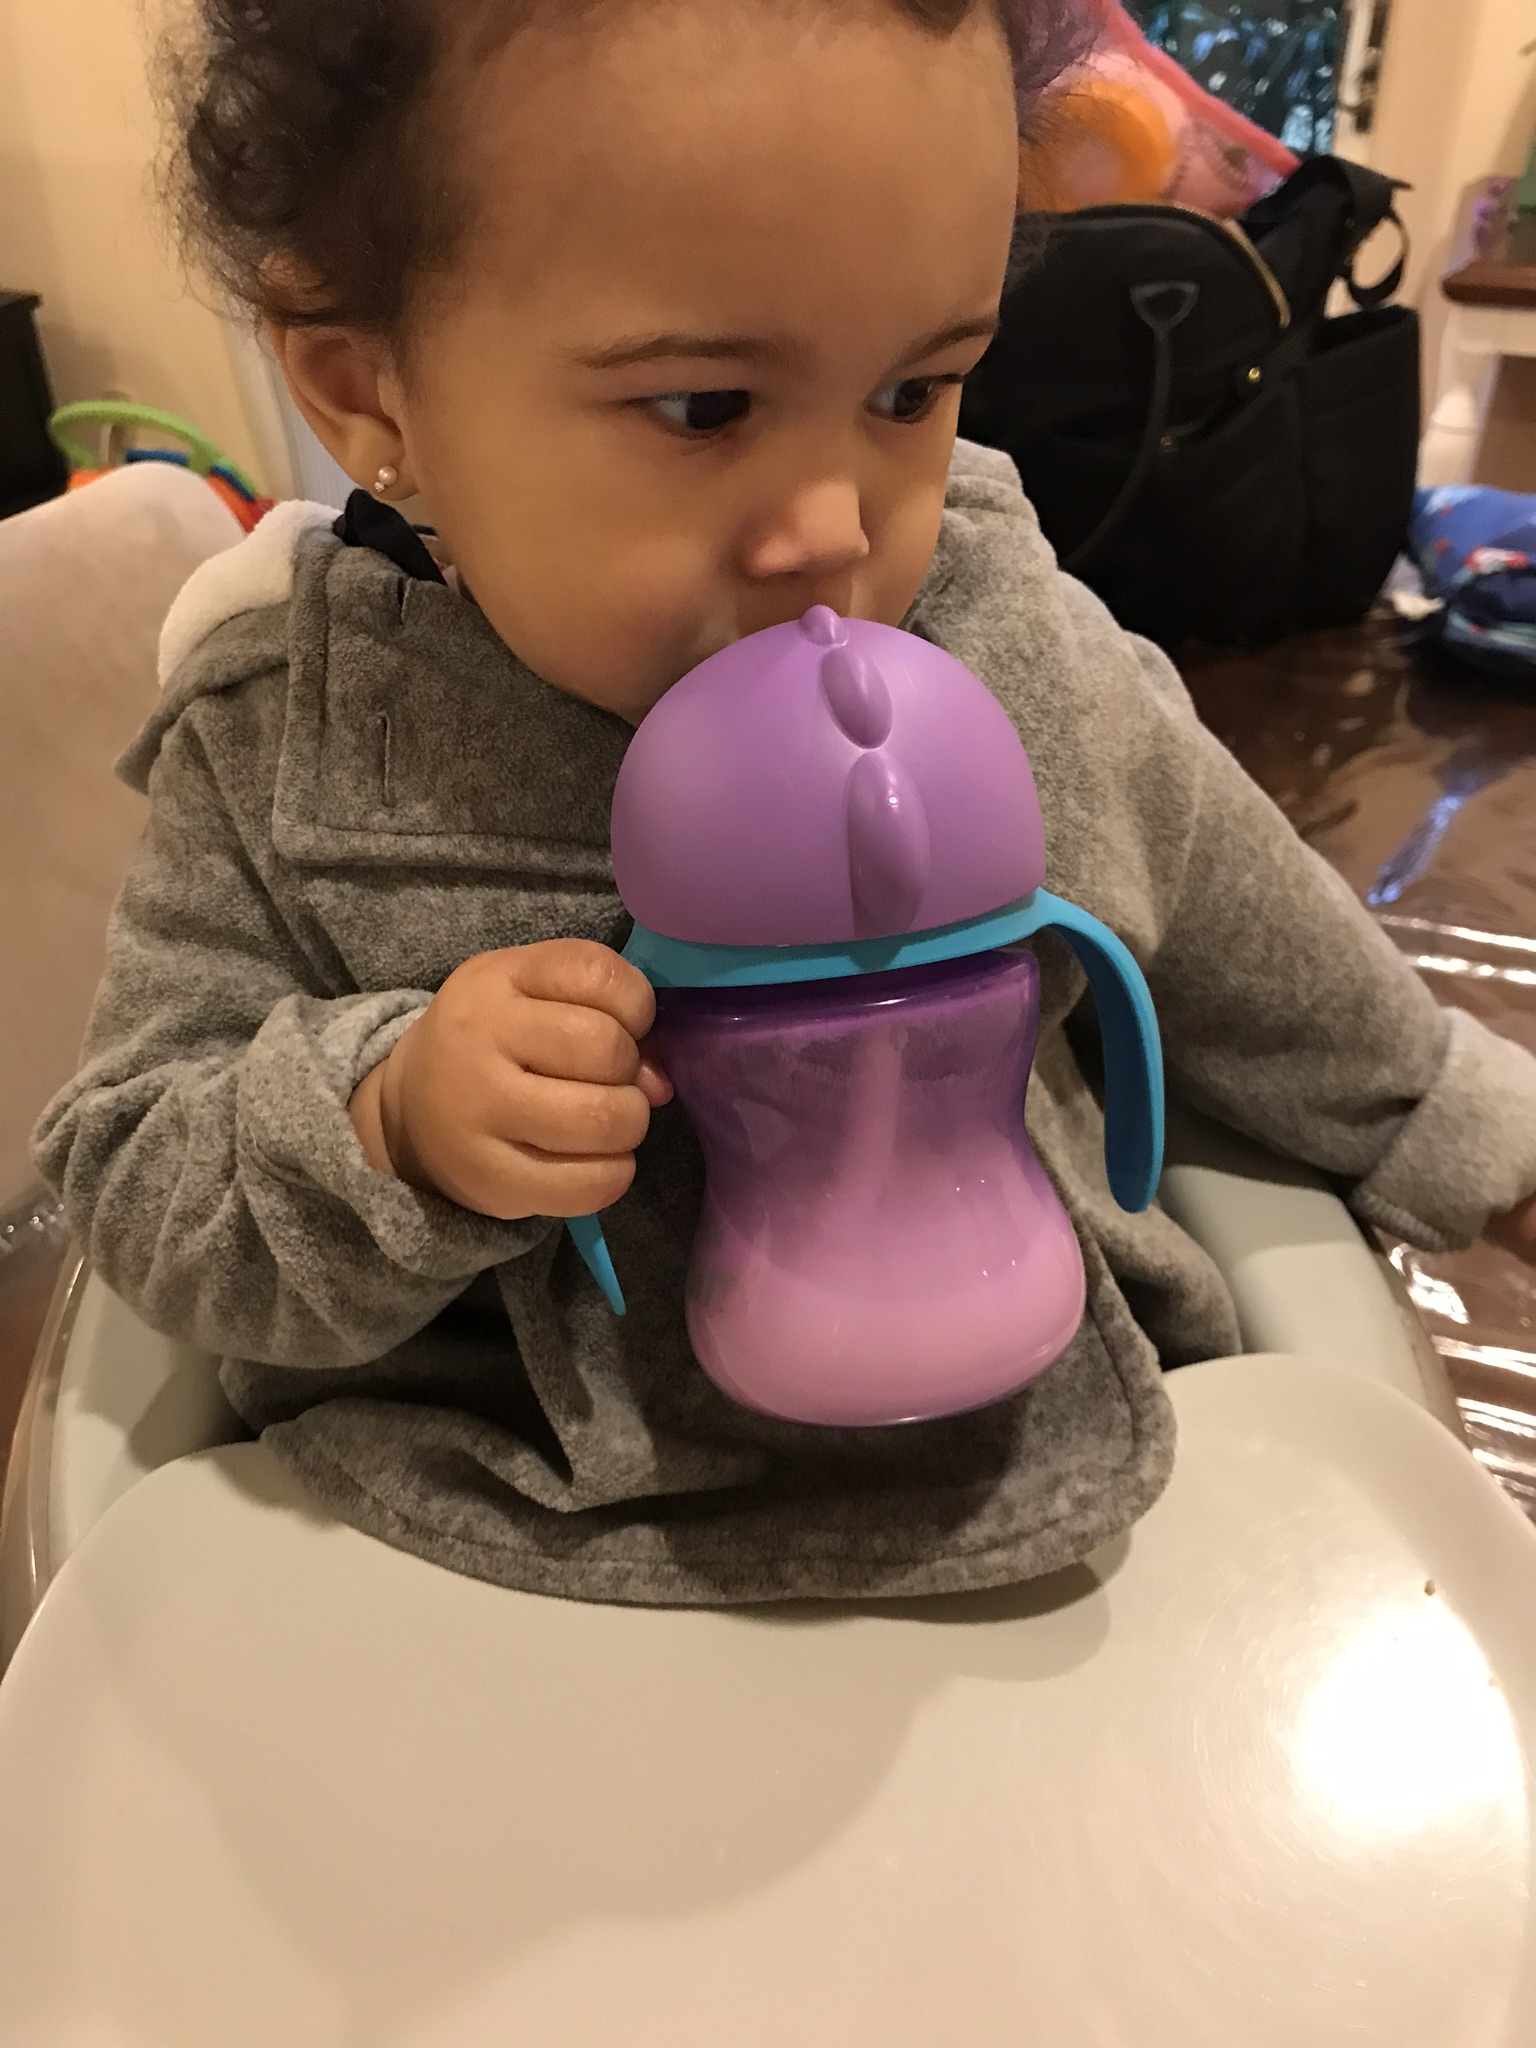 - She drinks milk out of a Phillips Avent My Bendy Straw cup and drinks a HIPP hypoallergenic formula.